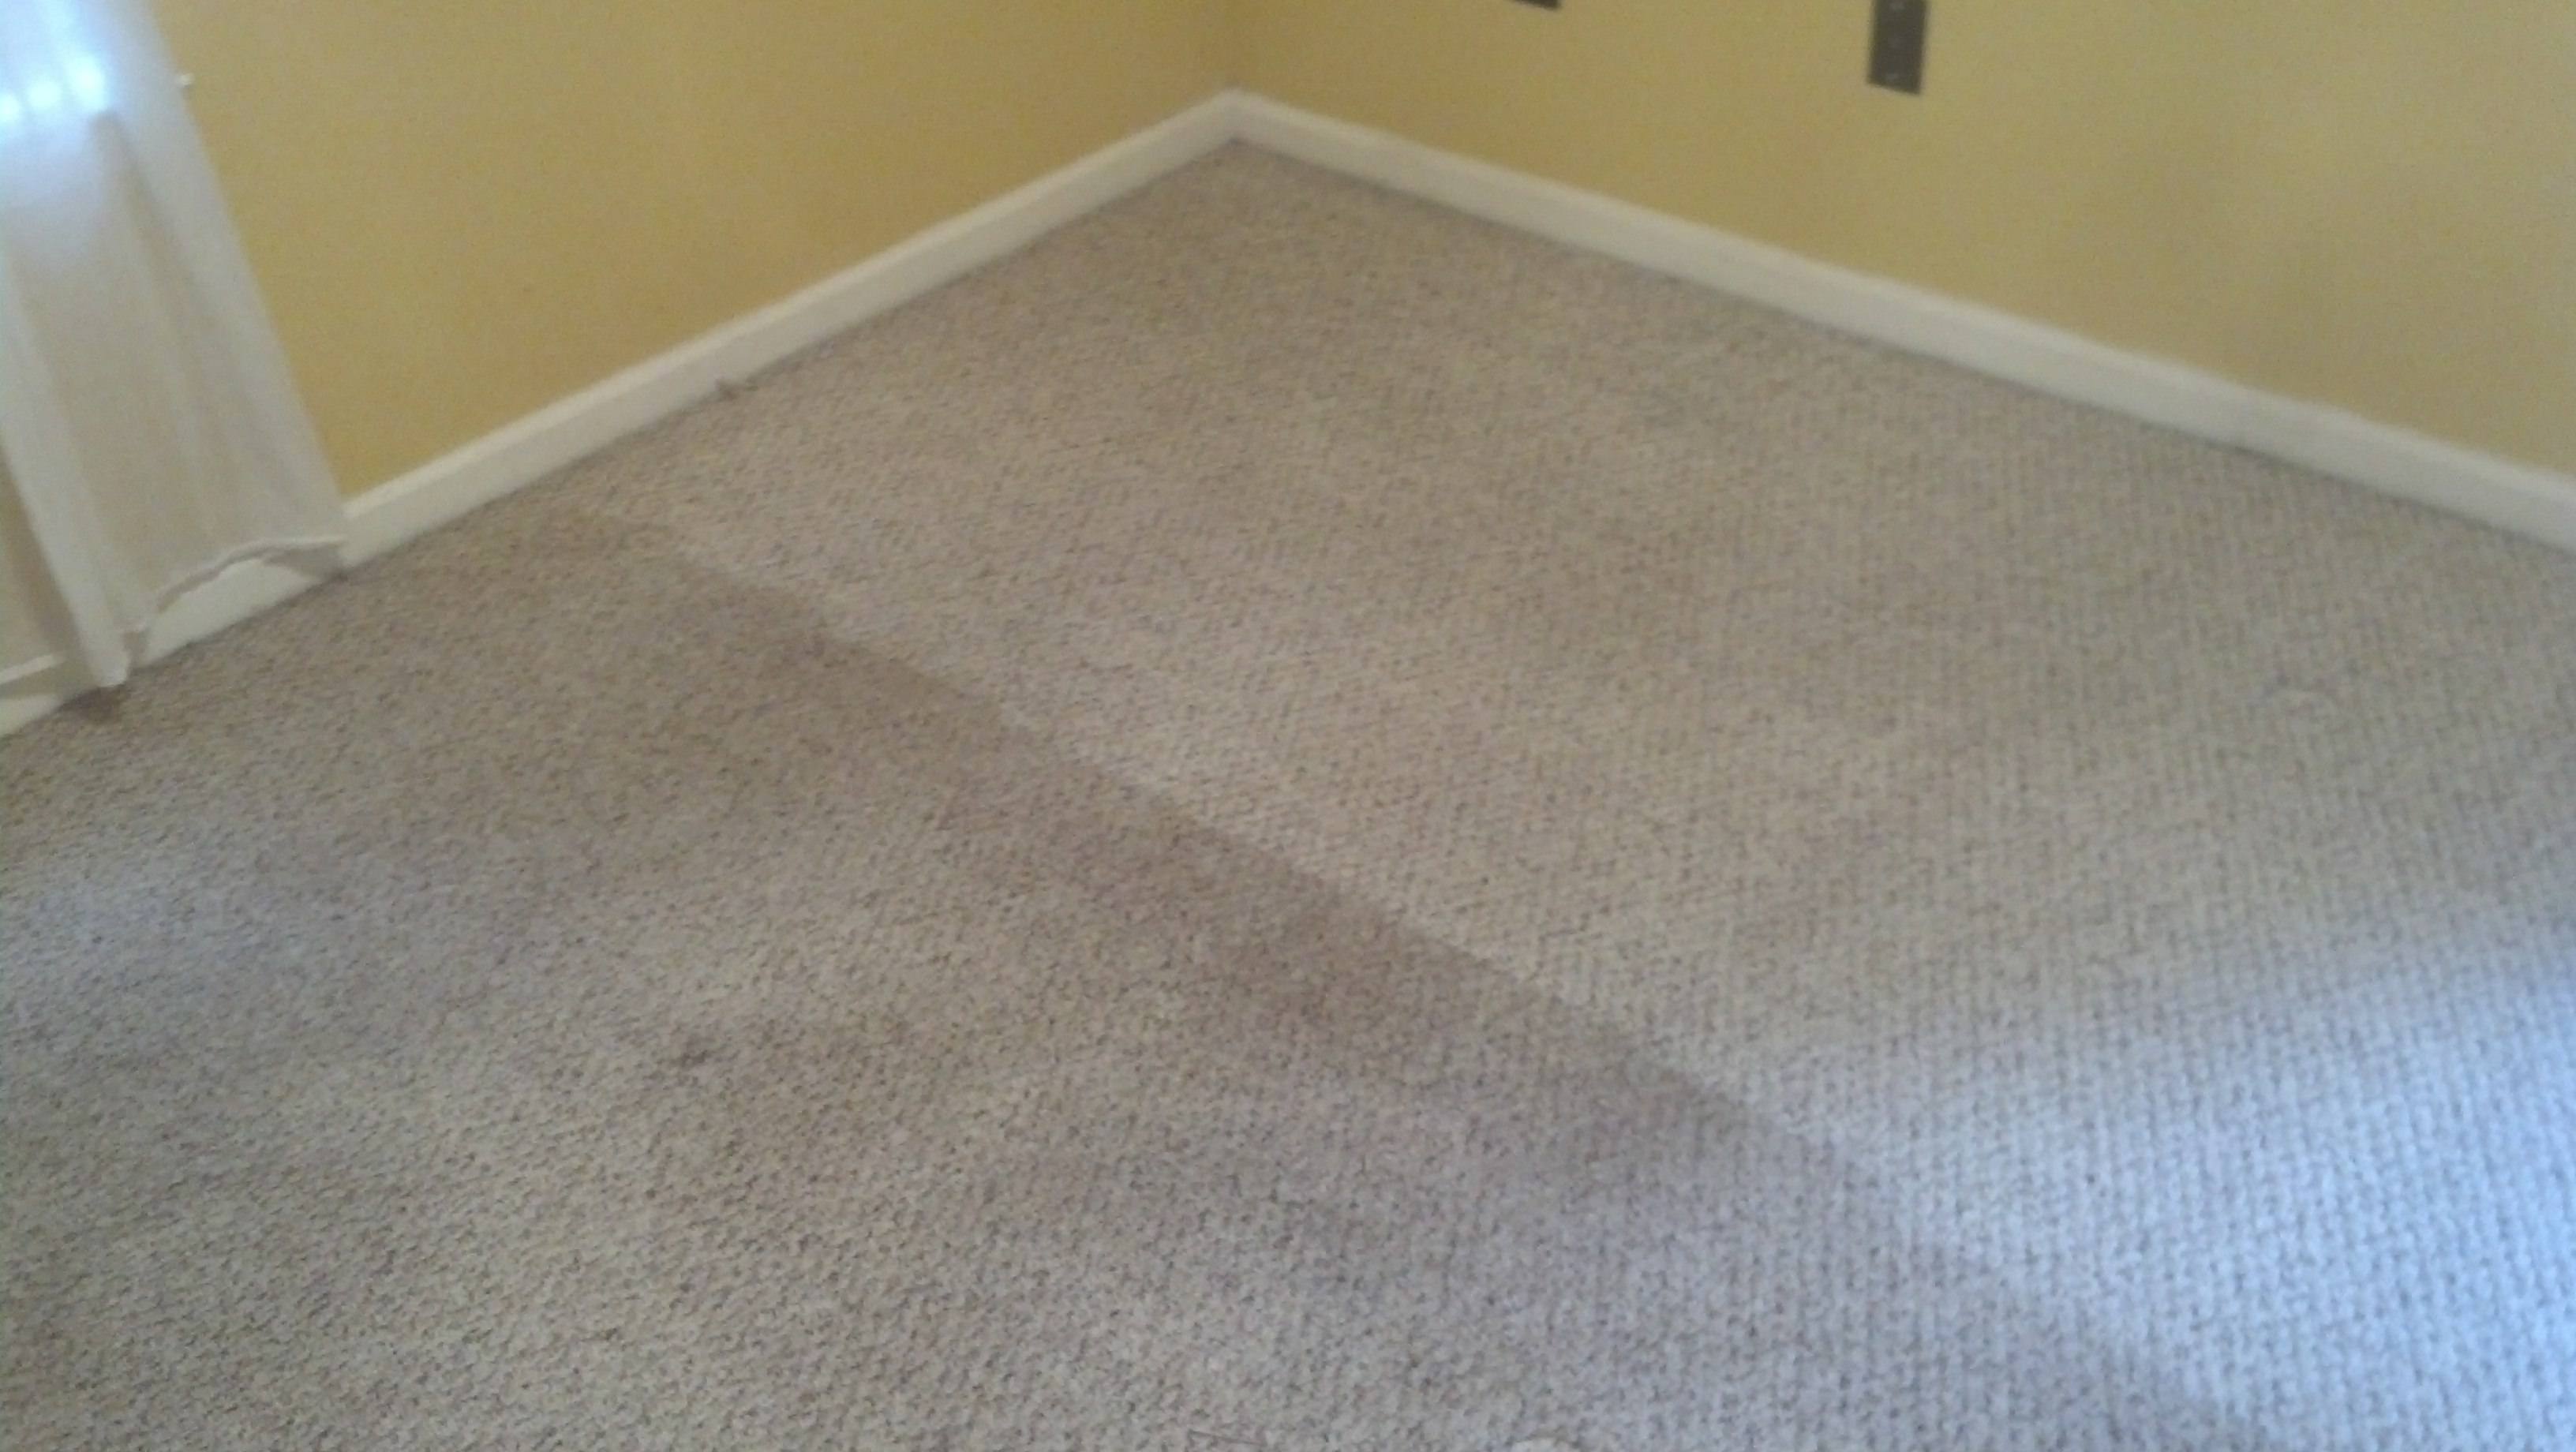 Carpet cleaning company peachtree city fayetteville berber carpet cleaning peachtree city baanklon Choice Image